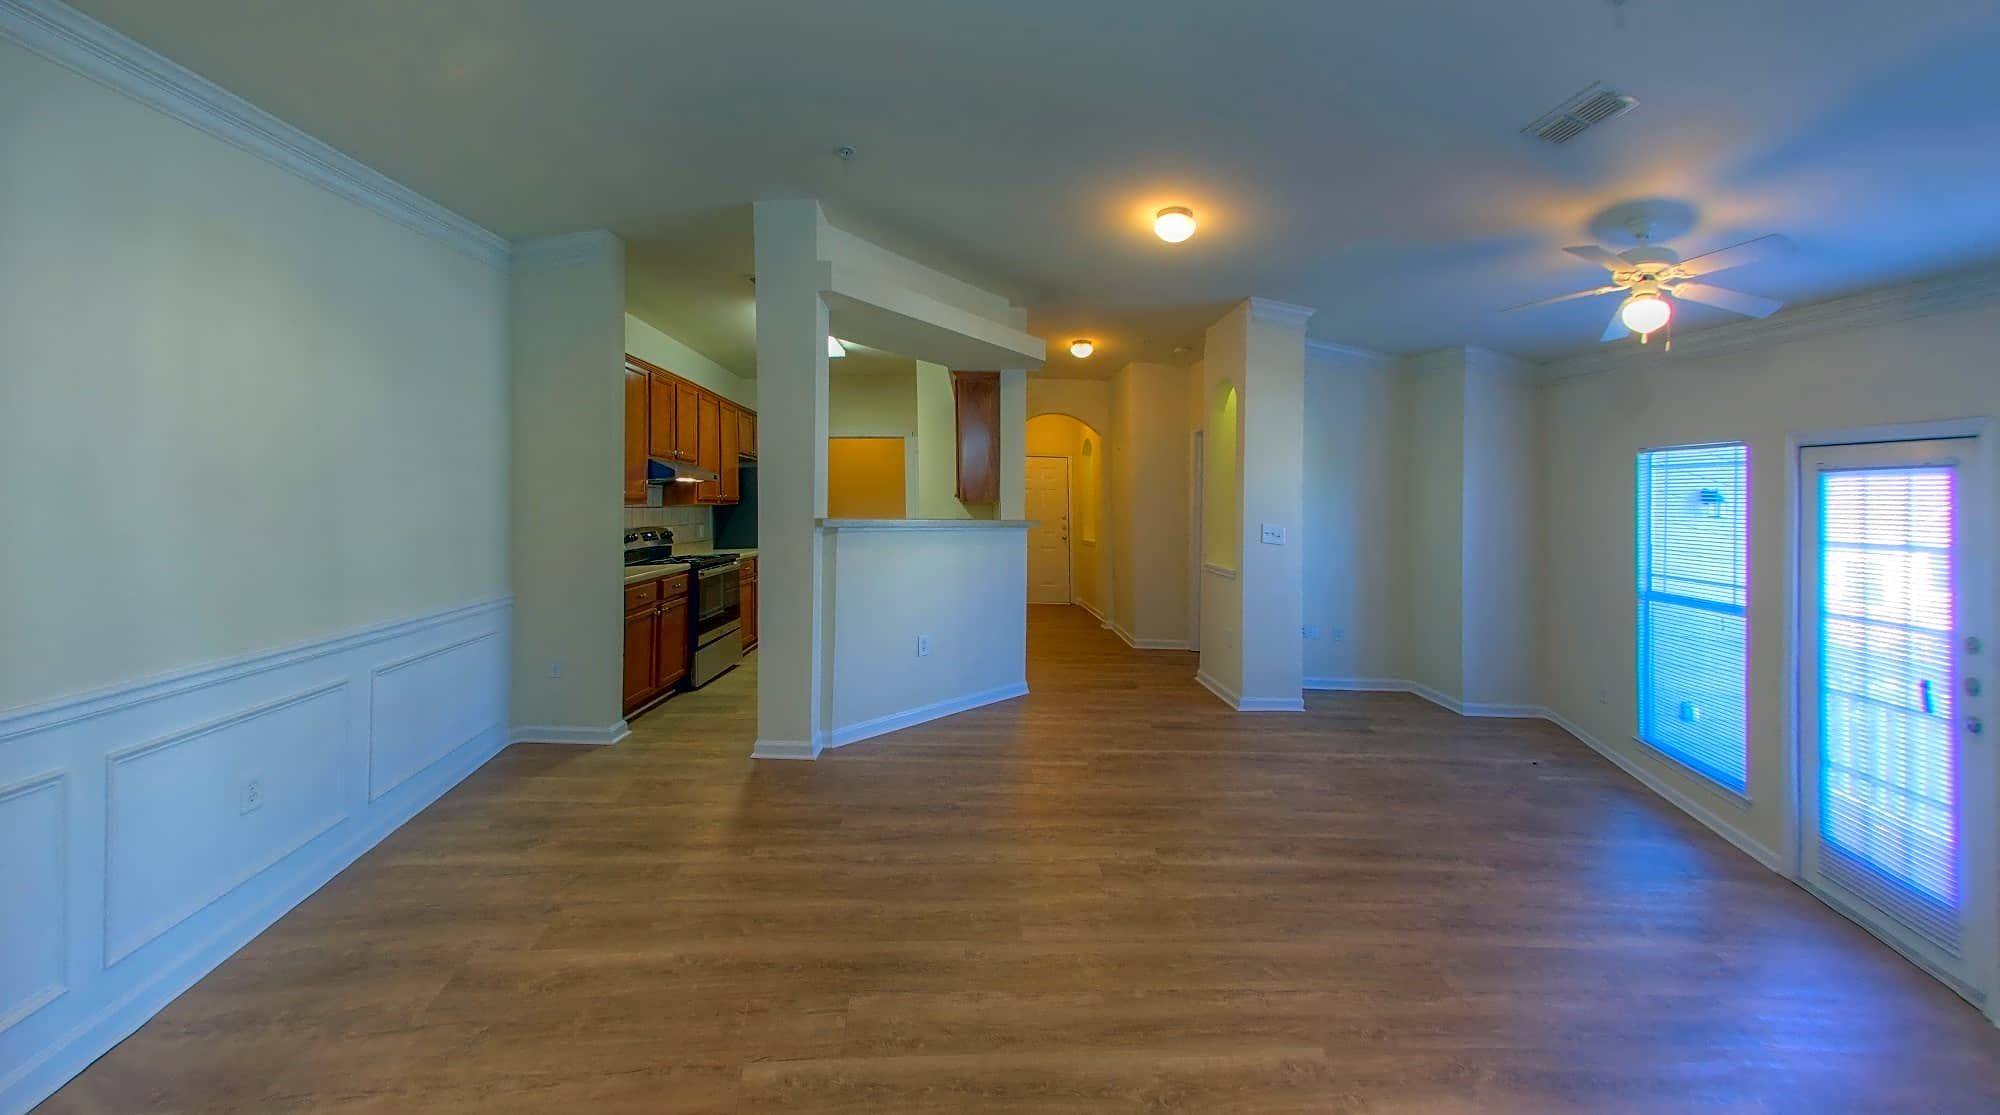 LVT Floors and Ceiling Fans